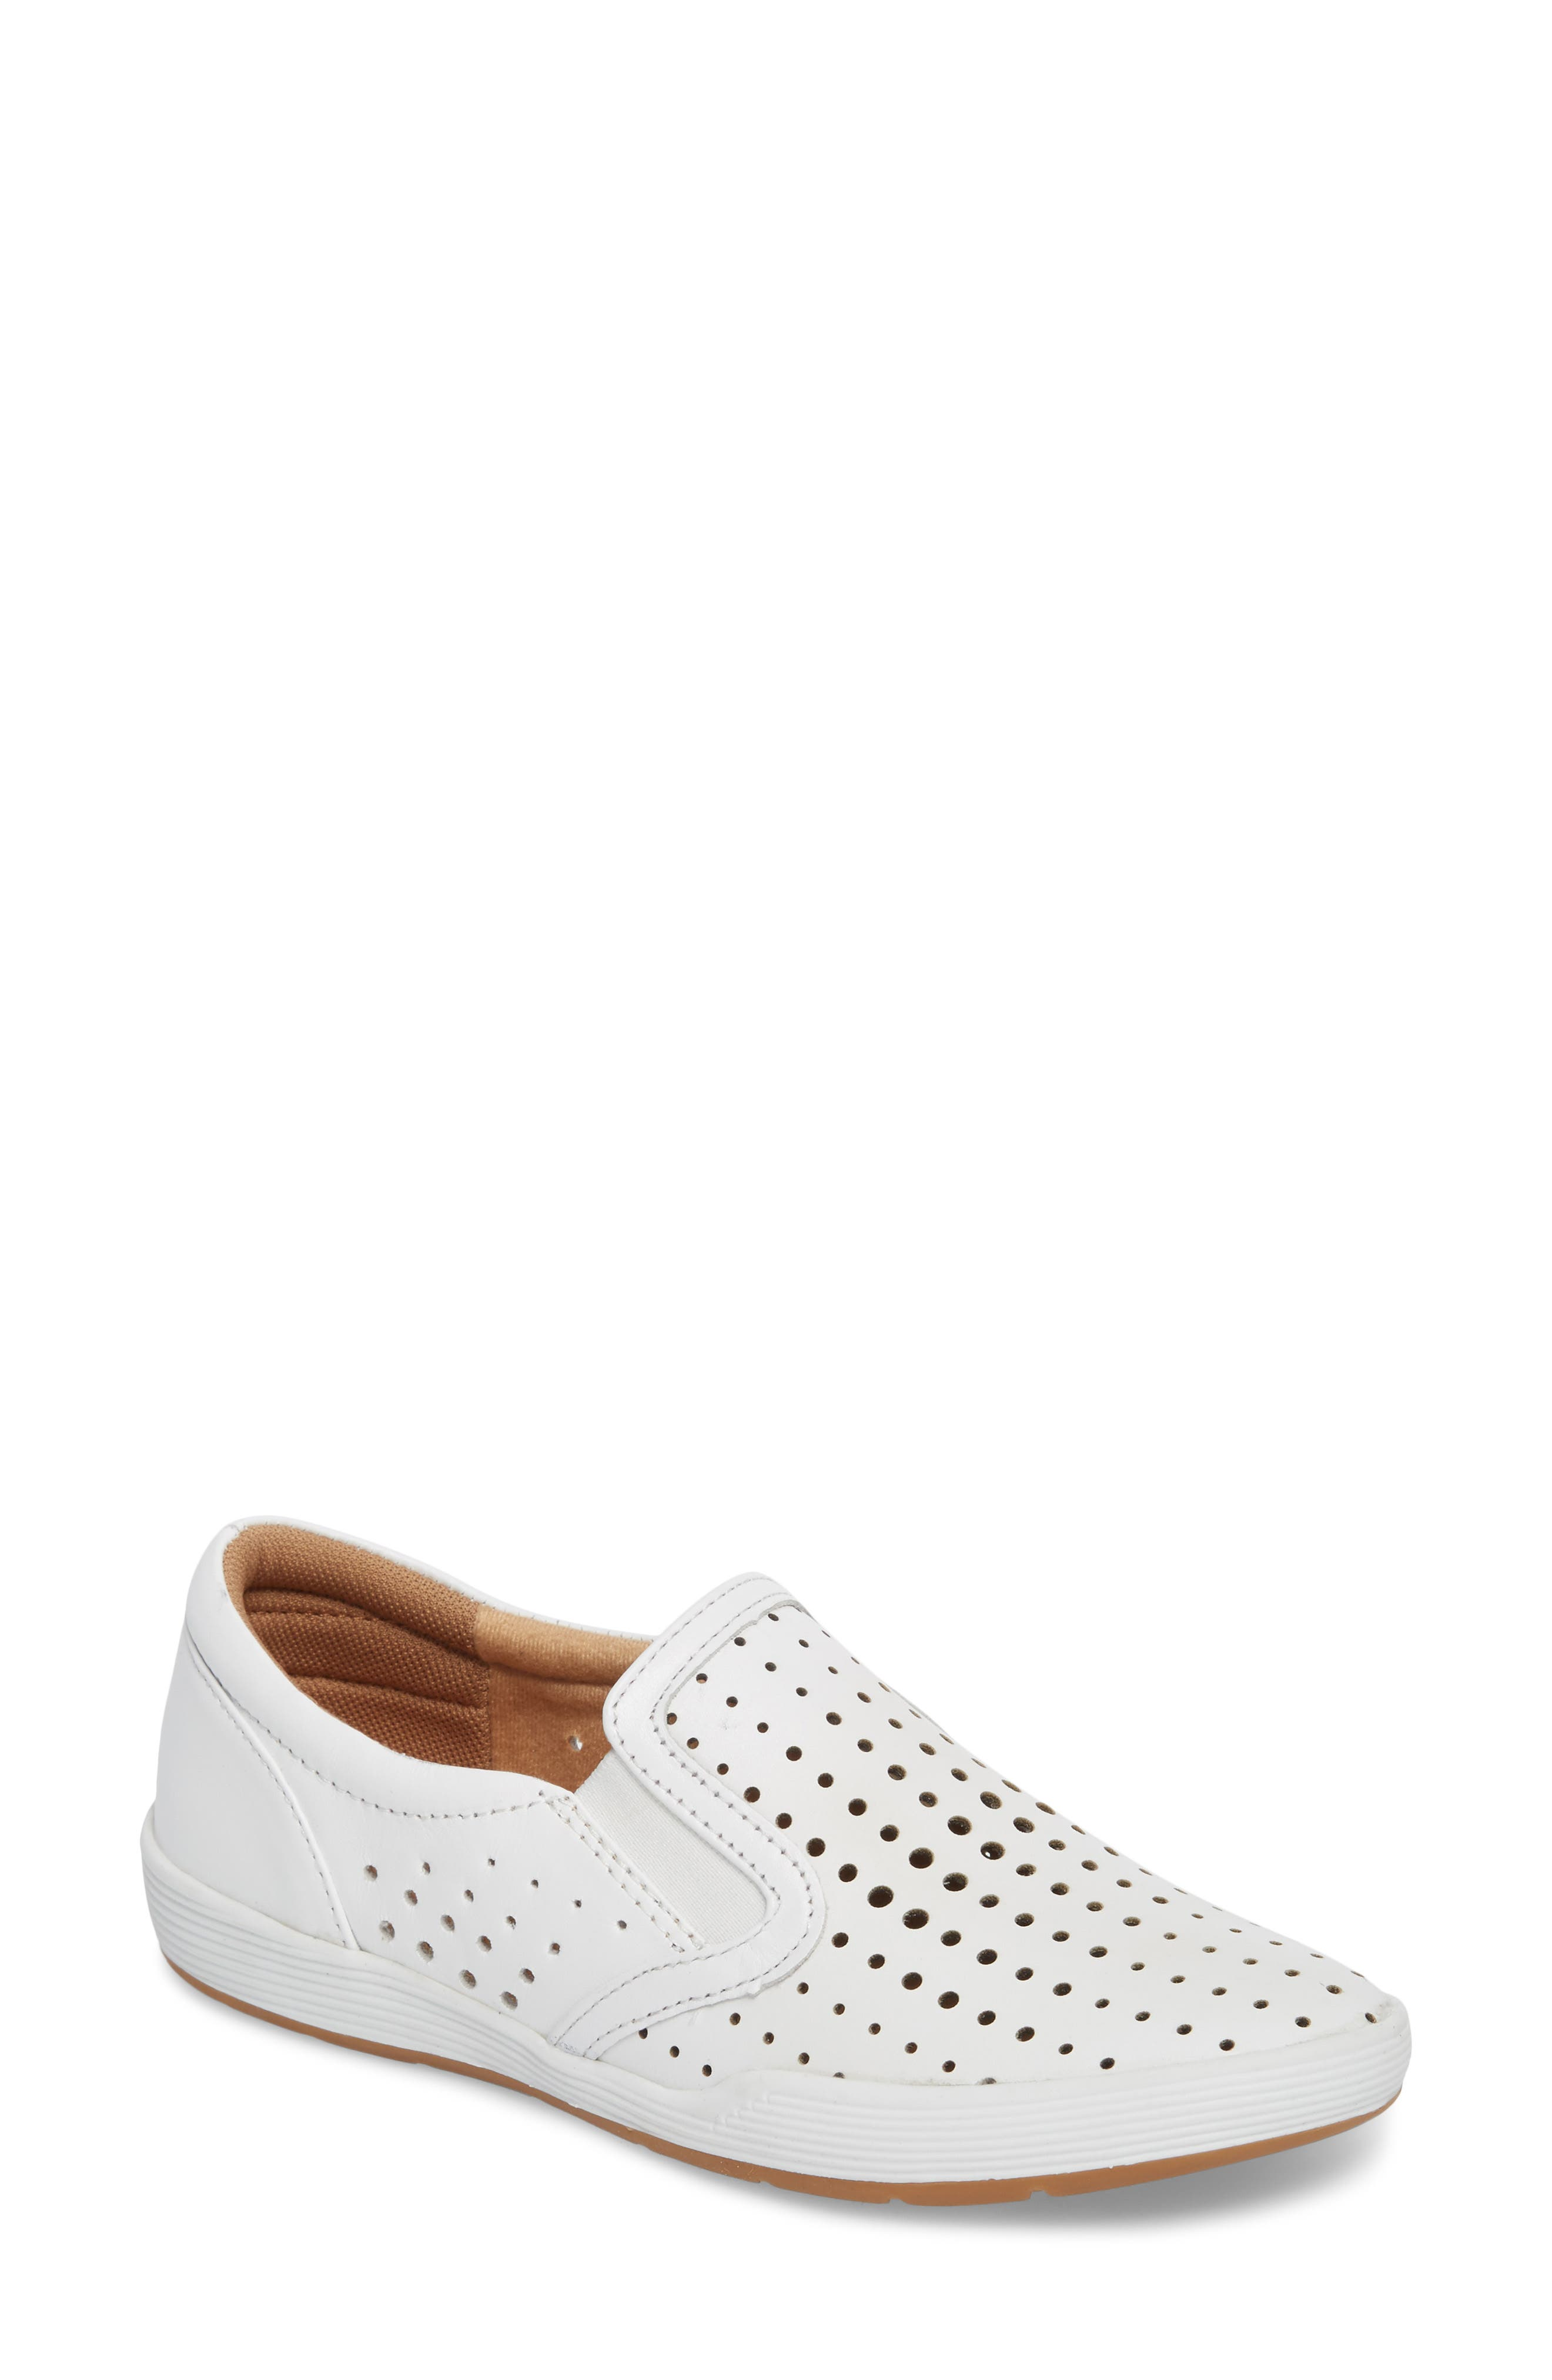 COMFORTIVA, Lyra Perforated Slip-On Sneaker, Main thumbnail 1, color, WHITE LEATHER